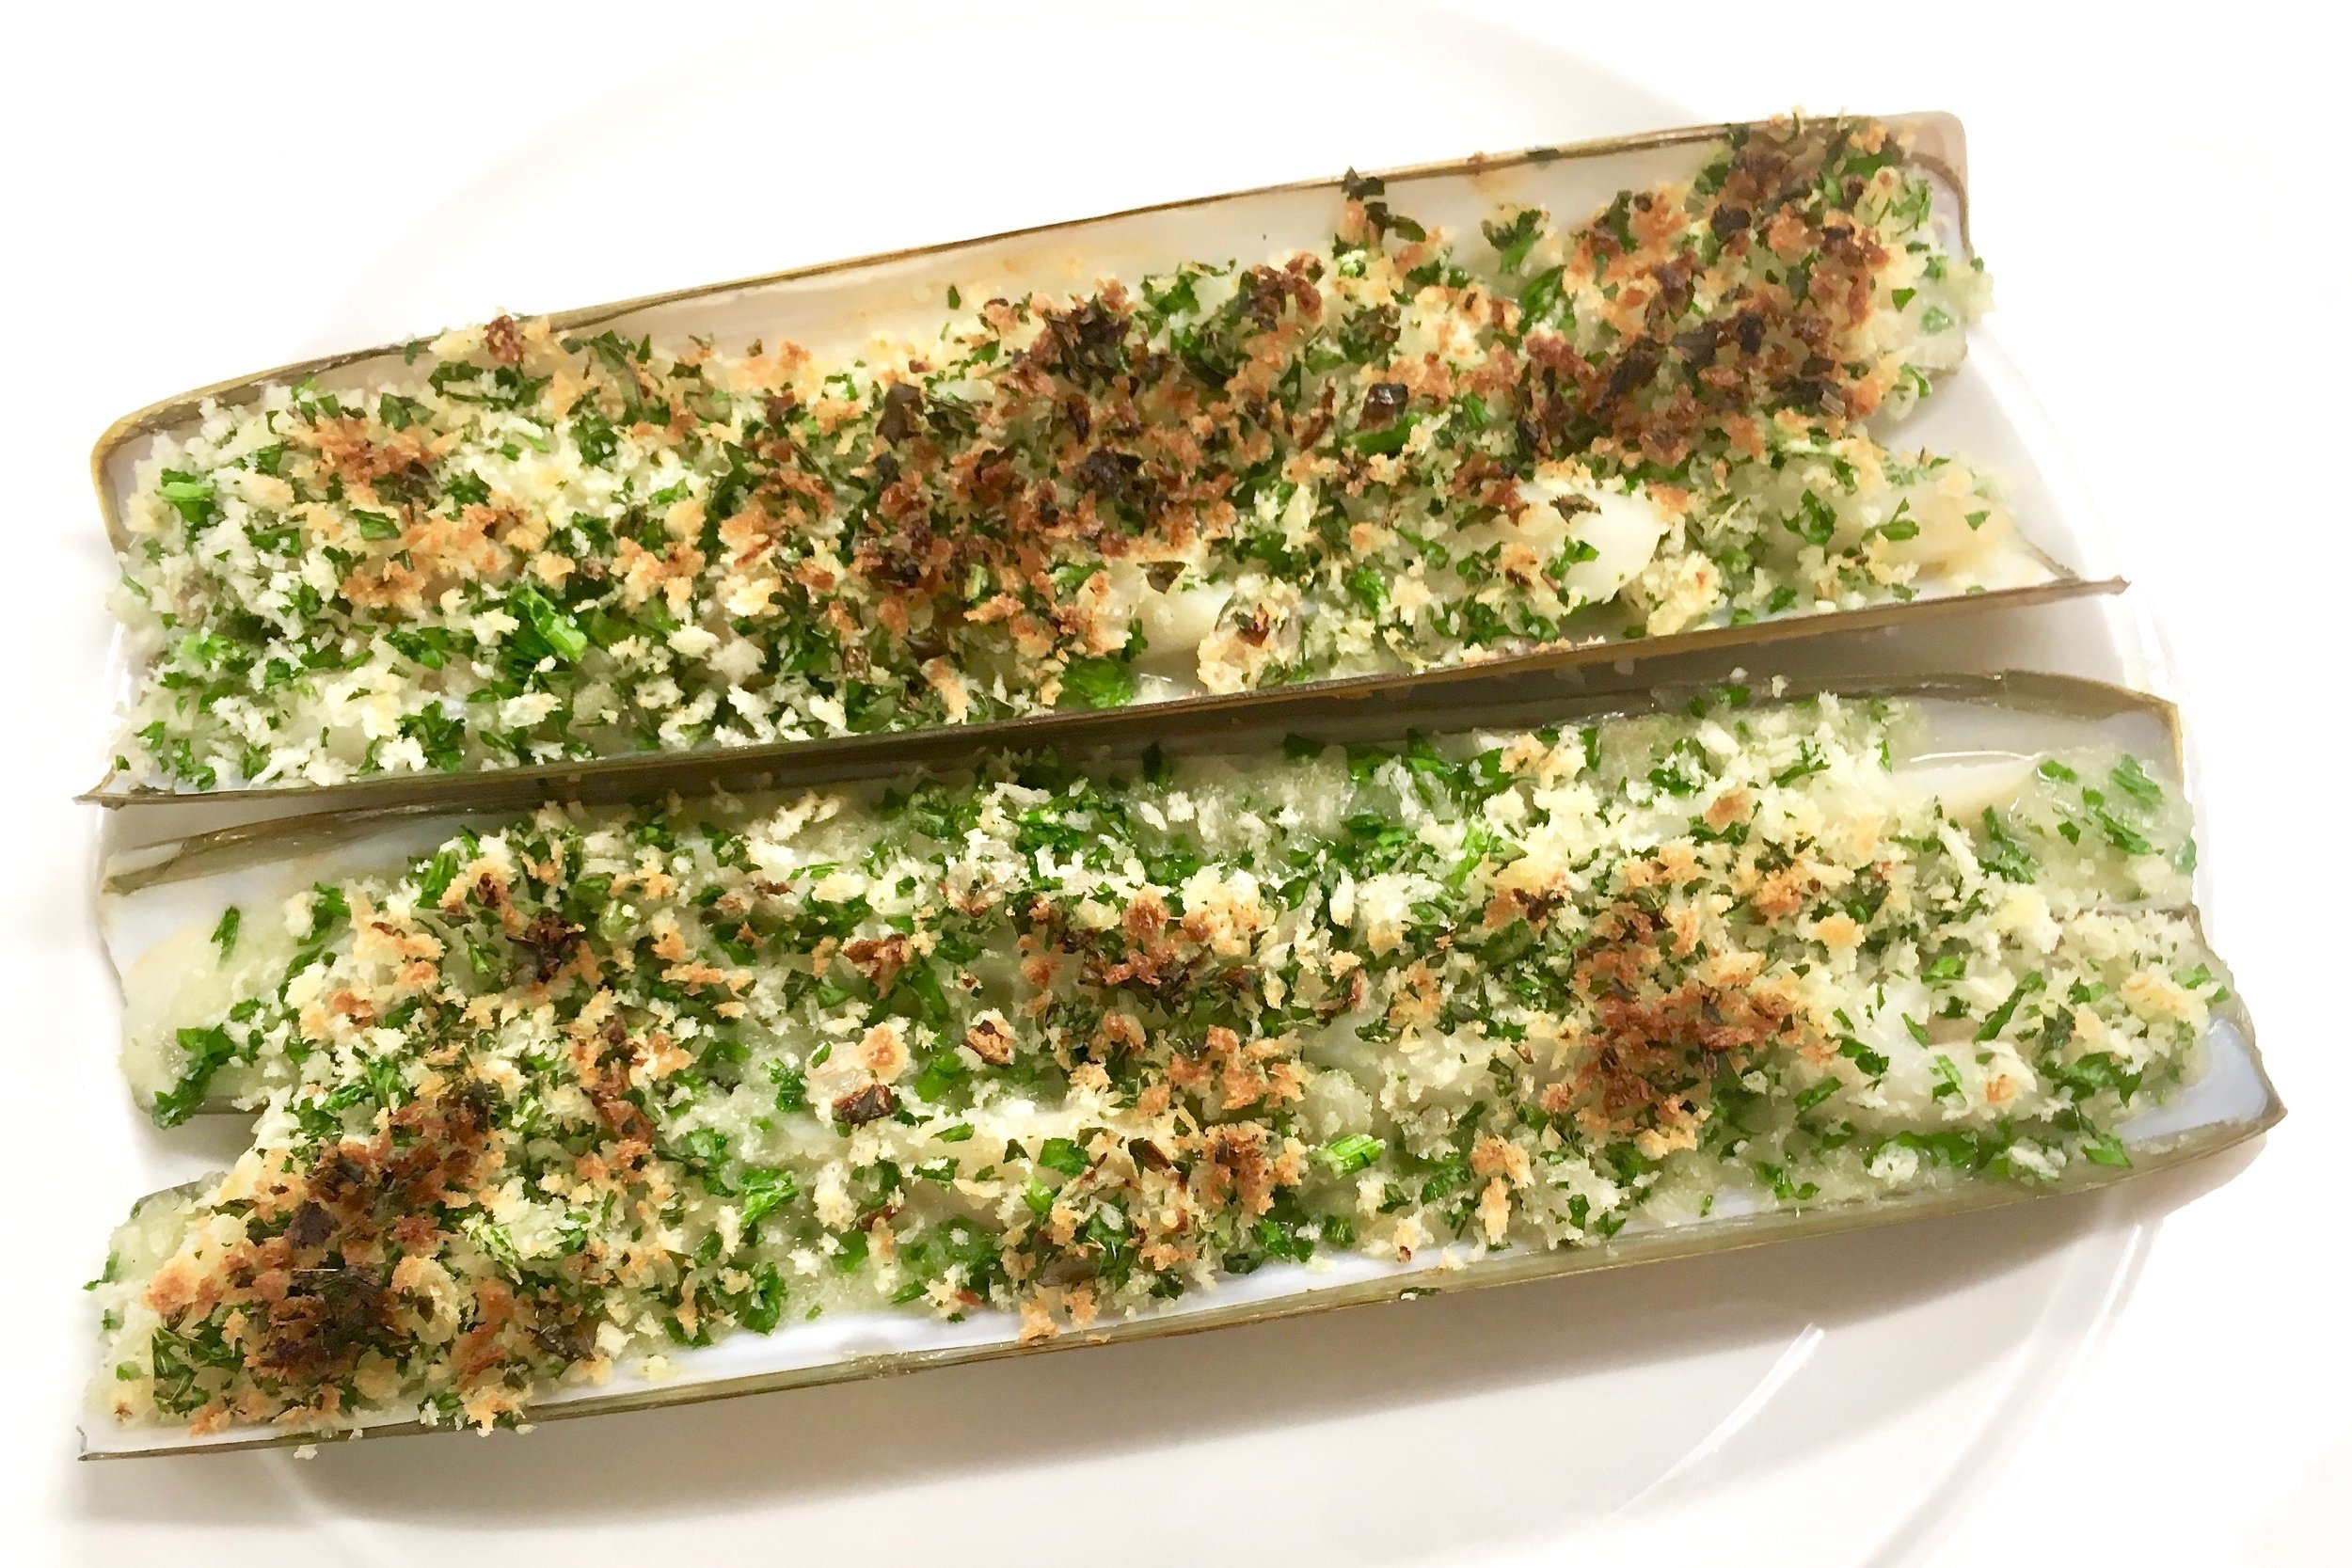 Razor clams served in their shells with a parley crust